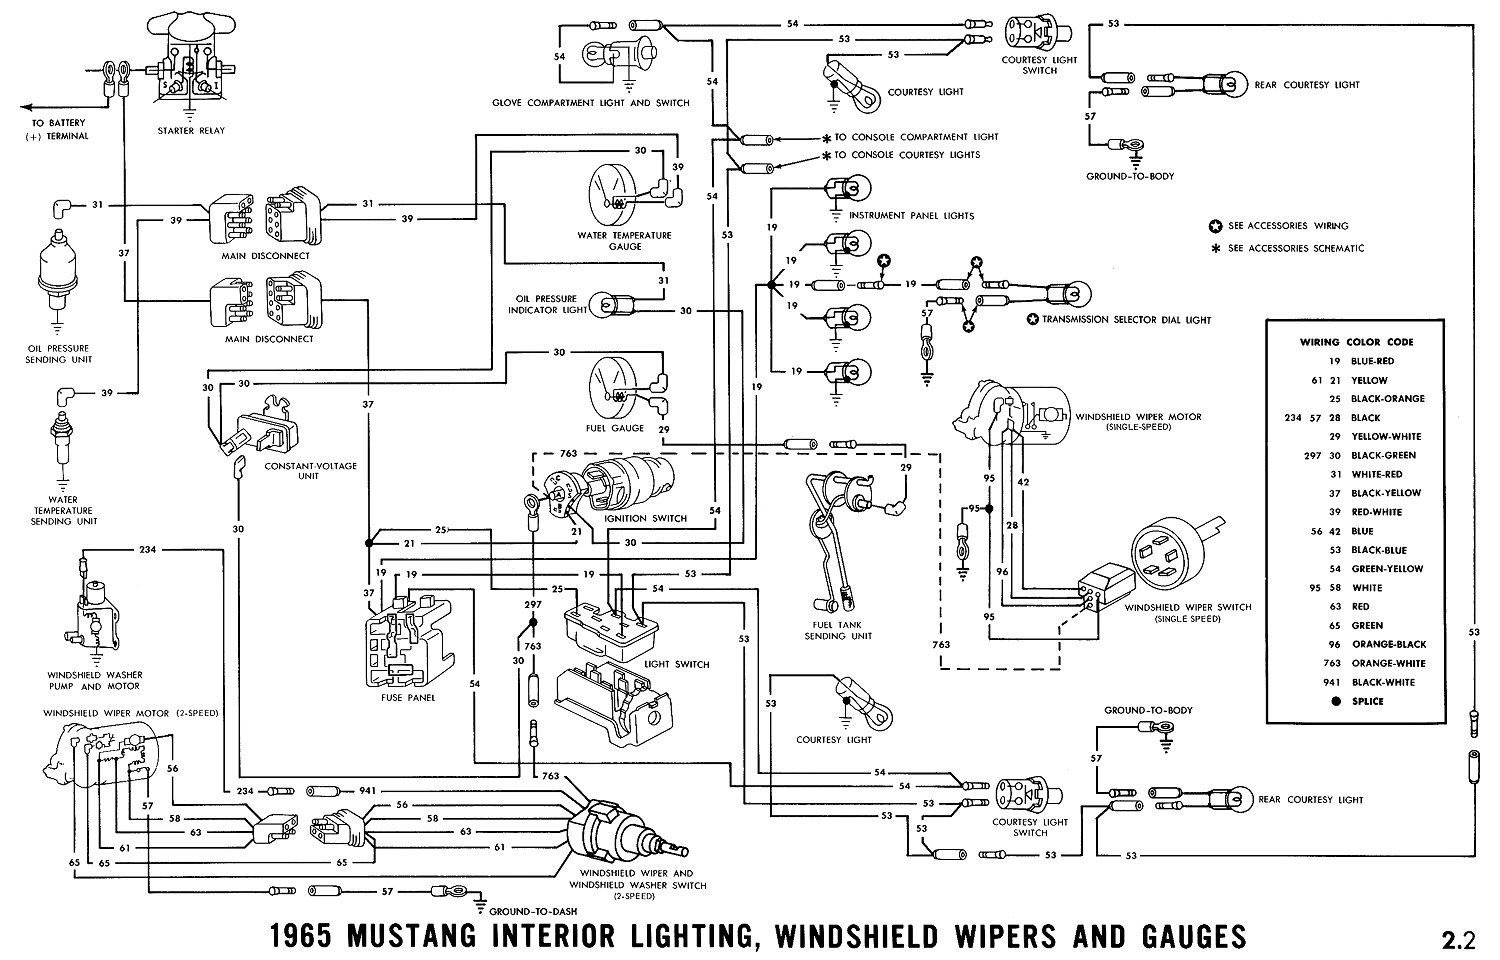 1969 Mach 1 Wiring Diagram - Wiring Diagram •  Dodge Ram Wipers Wiring Diagram on 2013 dodge ram ignition system, ford f700 wiring diagrams, ford charging system diagrams, 2013 dodge ram lighting, 2013 dodge ram cooling system, 2013 dodge ram accessories, 2013 dodge ram manual transmission, 2013 dodge ram transfer case, 2013 dodge ram fuse box diagram, 2013 dodge dart stereo wiring diagram, 2013 dodge ram headlight adjustment, 2013 dodge ram 1500 harness, 2013 dodge ram exhaust system, 2013 dodge ram engine, 2013 dodge ram steering, dodge parts diagrams, 2013 dodge ram dimensions, 2013 dodge ram color codes, 2013 dodge charger wiring diagrams, 2013 dodge ram parts,